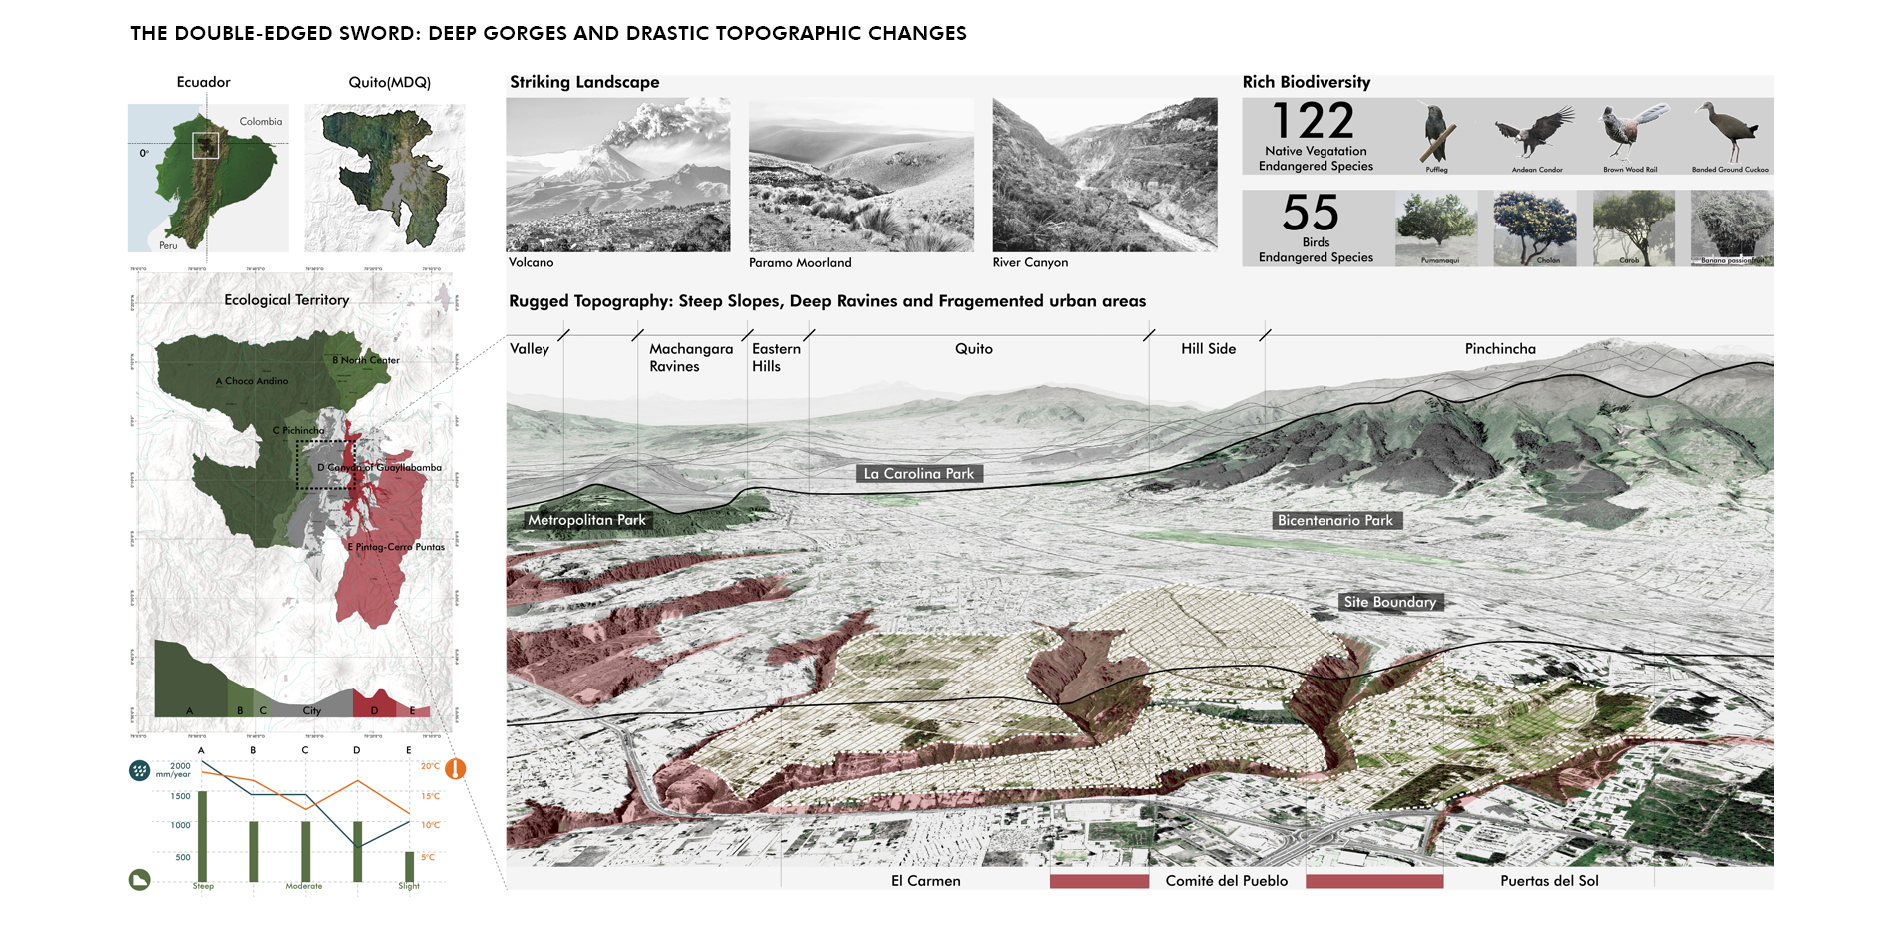 The Double-Edged Sword: Deep Gorges and Drastic Topographic Changes